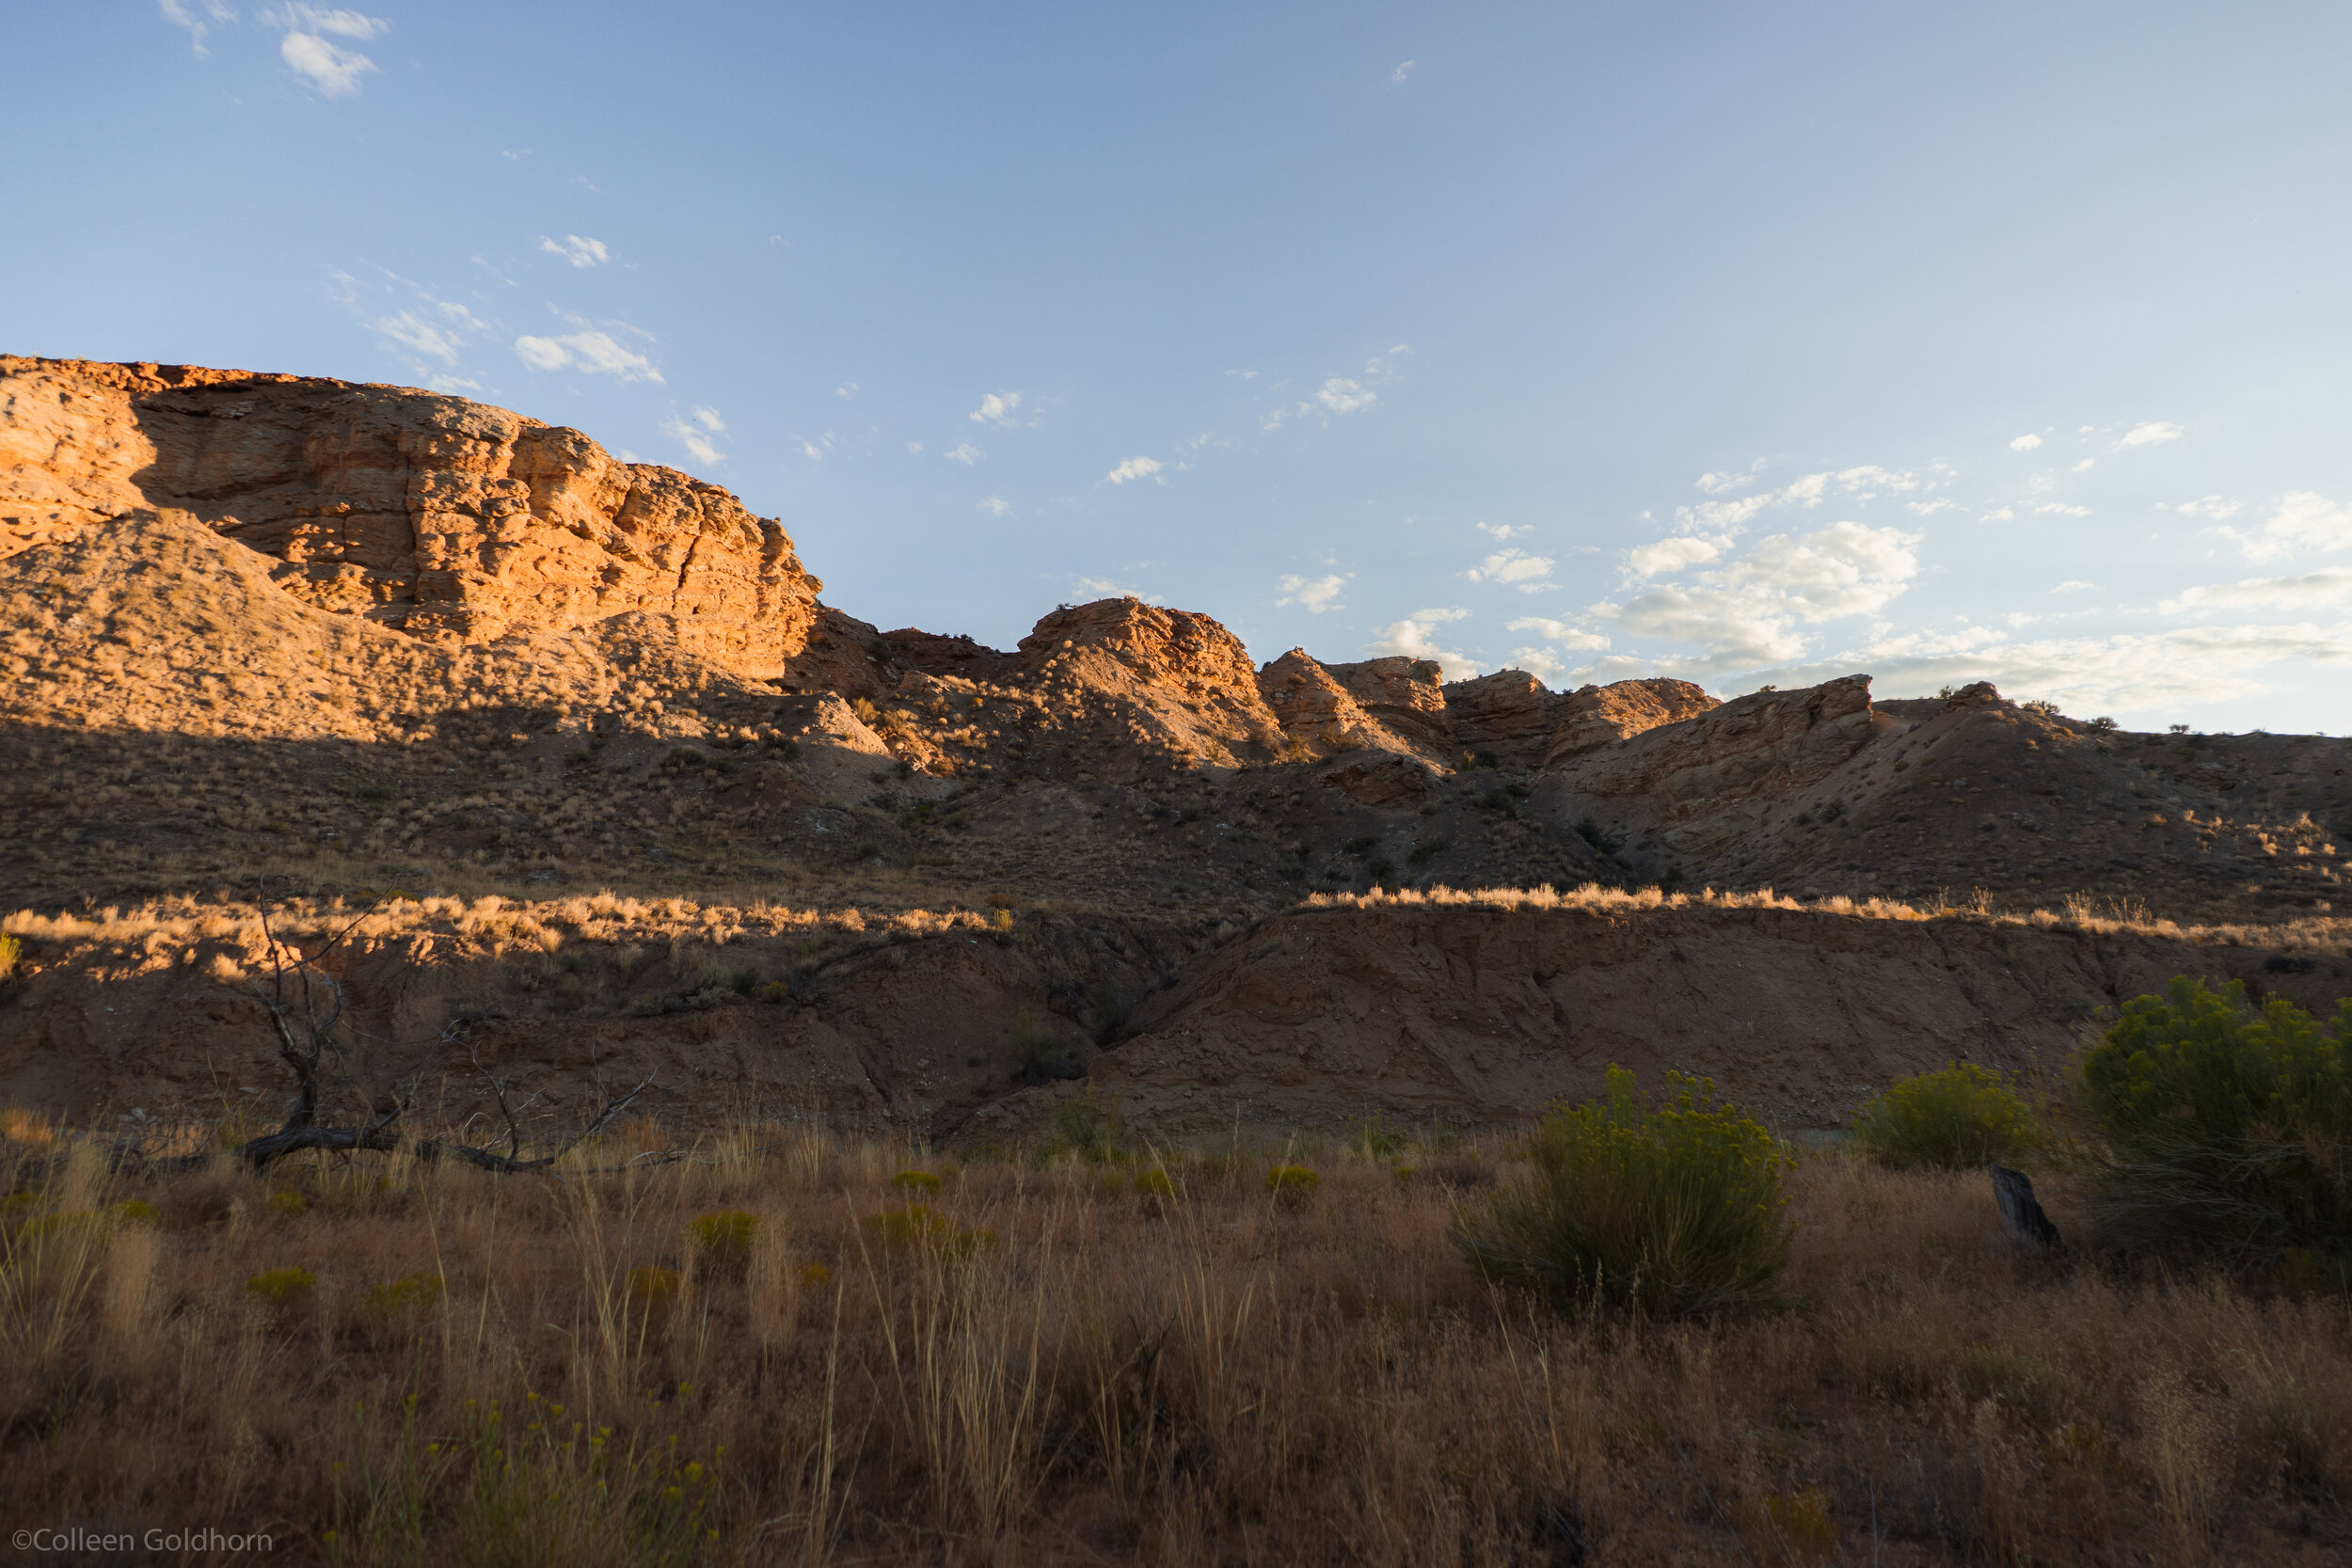 As we walked back to the car, the sun was setting and covered the valley in golden light.